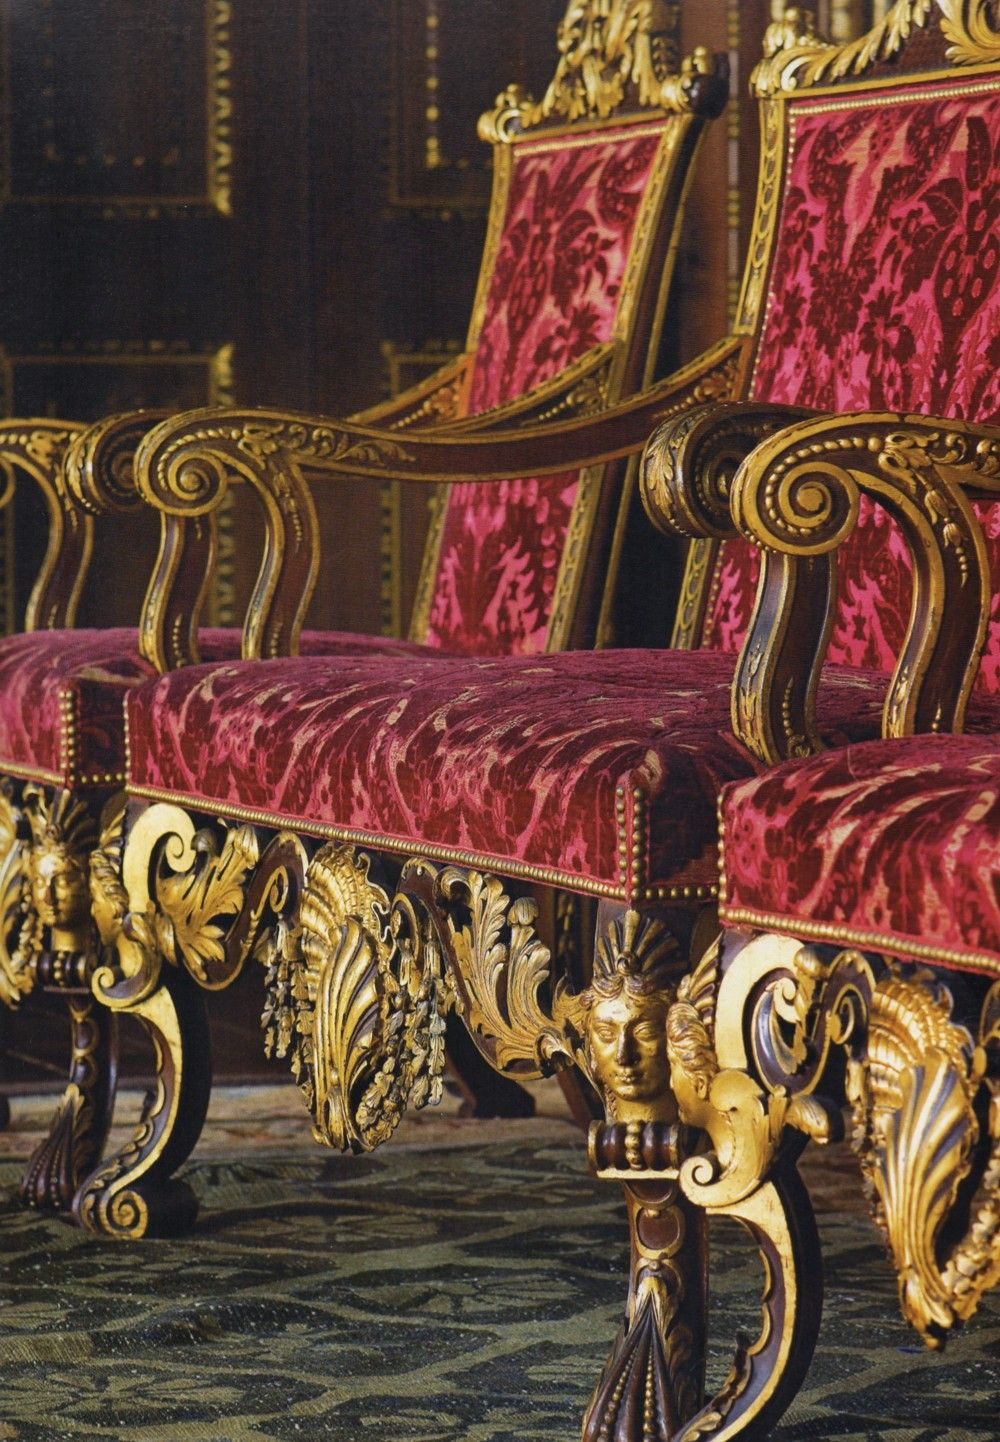 Stately Chairs Hold Court At Houghton Hall Splendor Ornate Furniture Chateaux Interiors Historical Interior